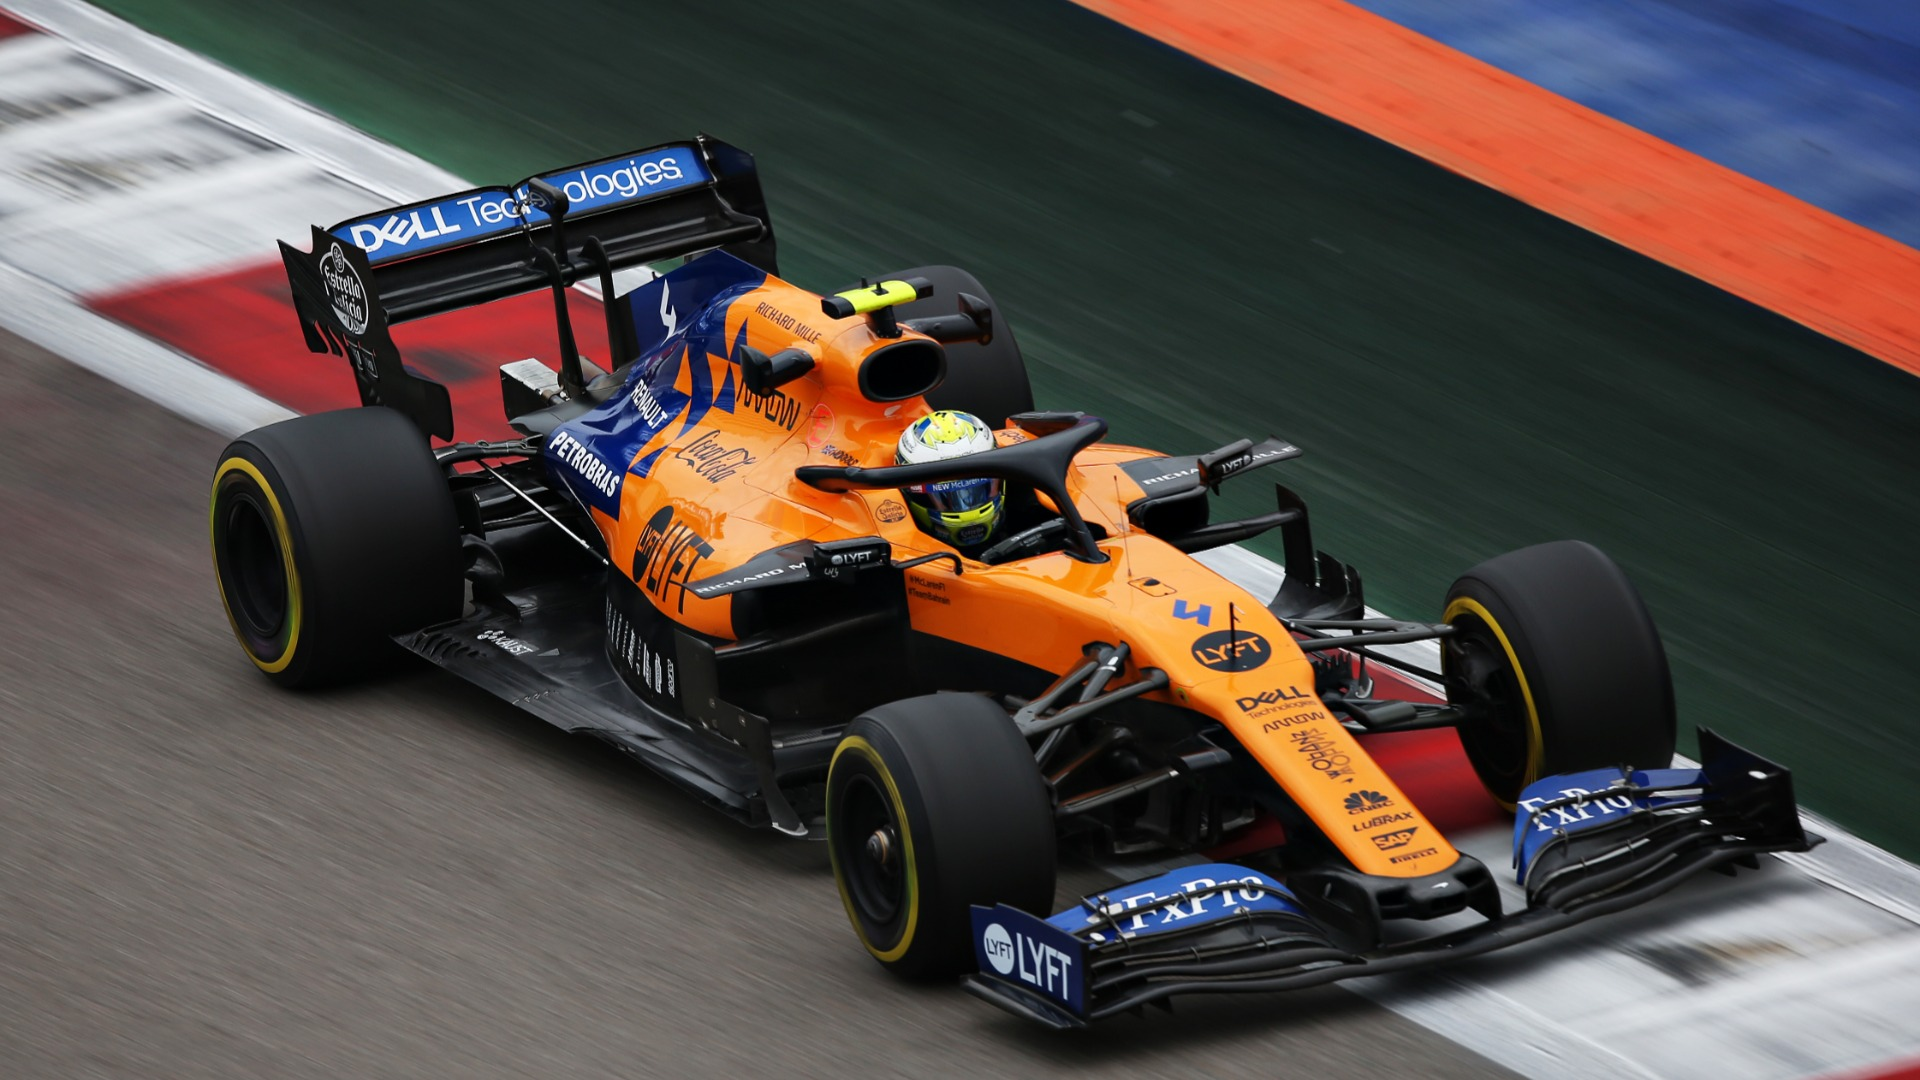 McLaren switching power from Renault back to Mercedes for 2021